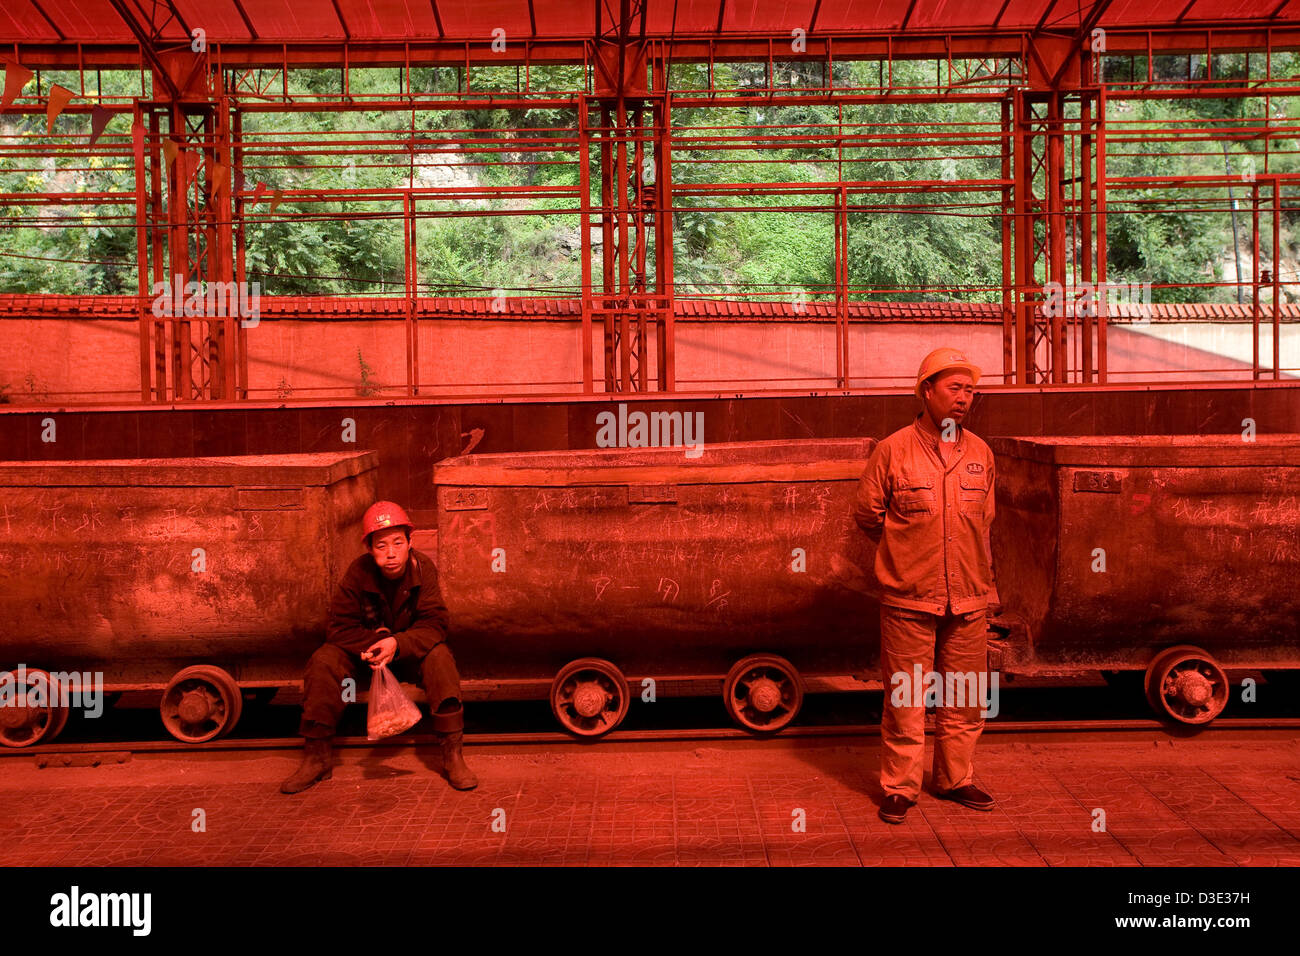 XIMING COAL MINE, TAIYUAN, CHINA - AUGUST 2007: Miners wait for the narrow guage electric trains that will take Stock Photo